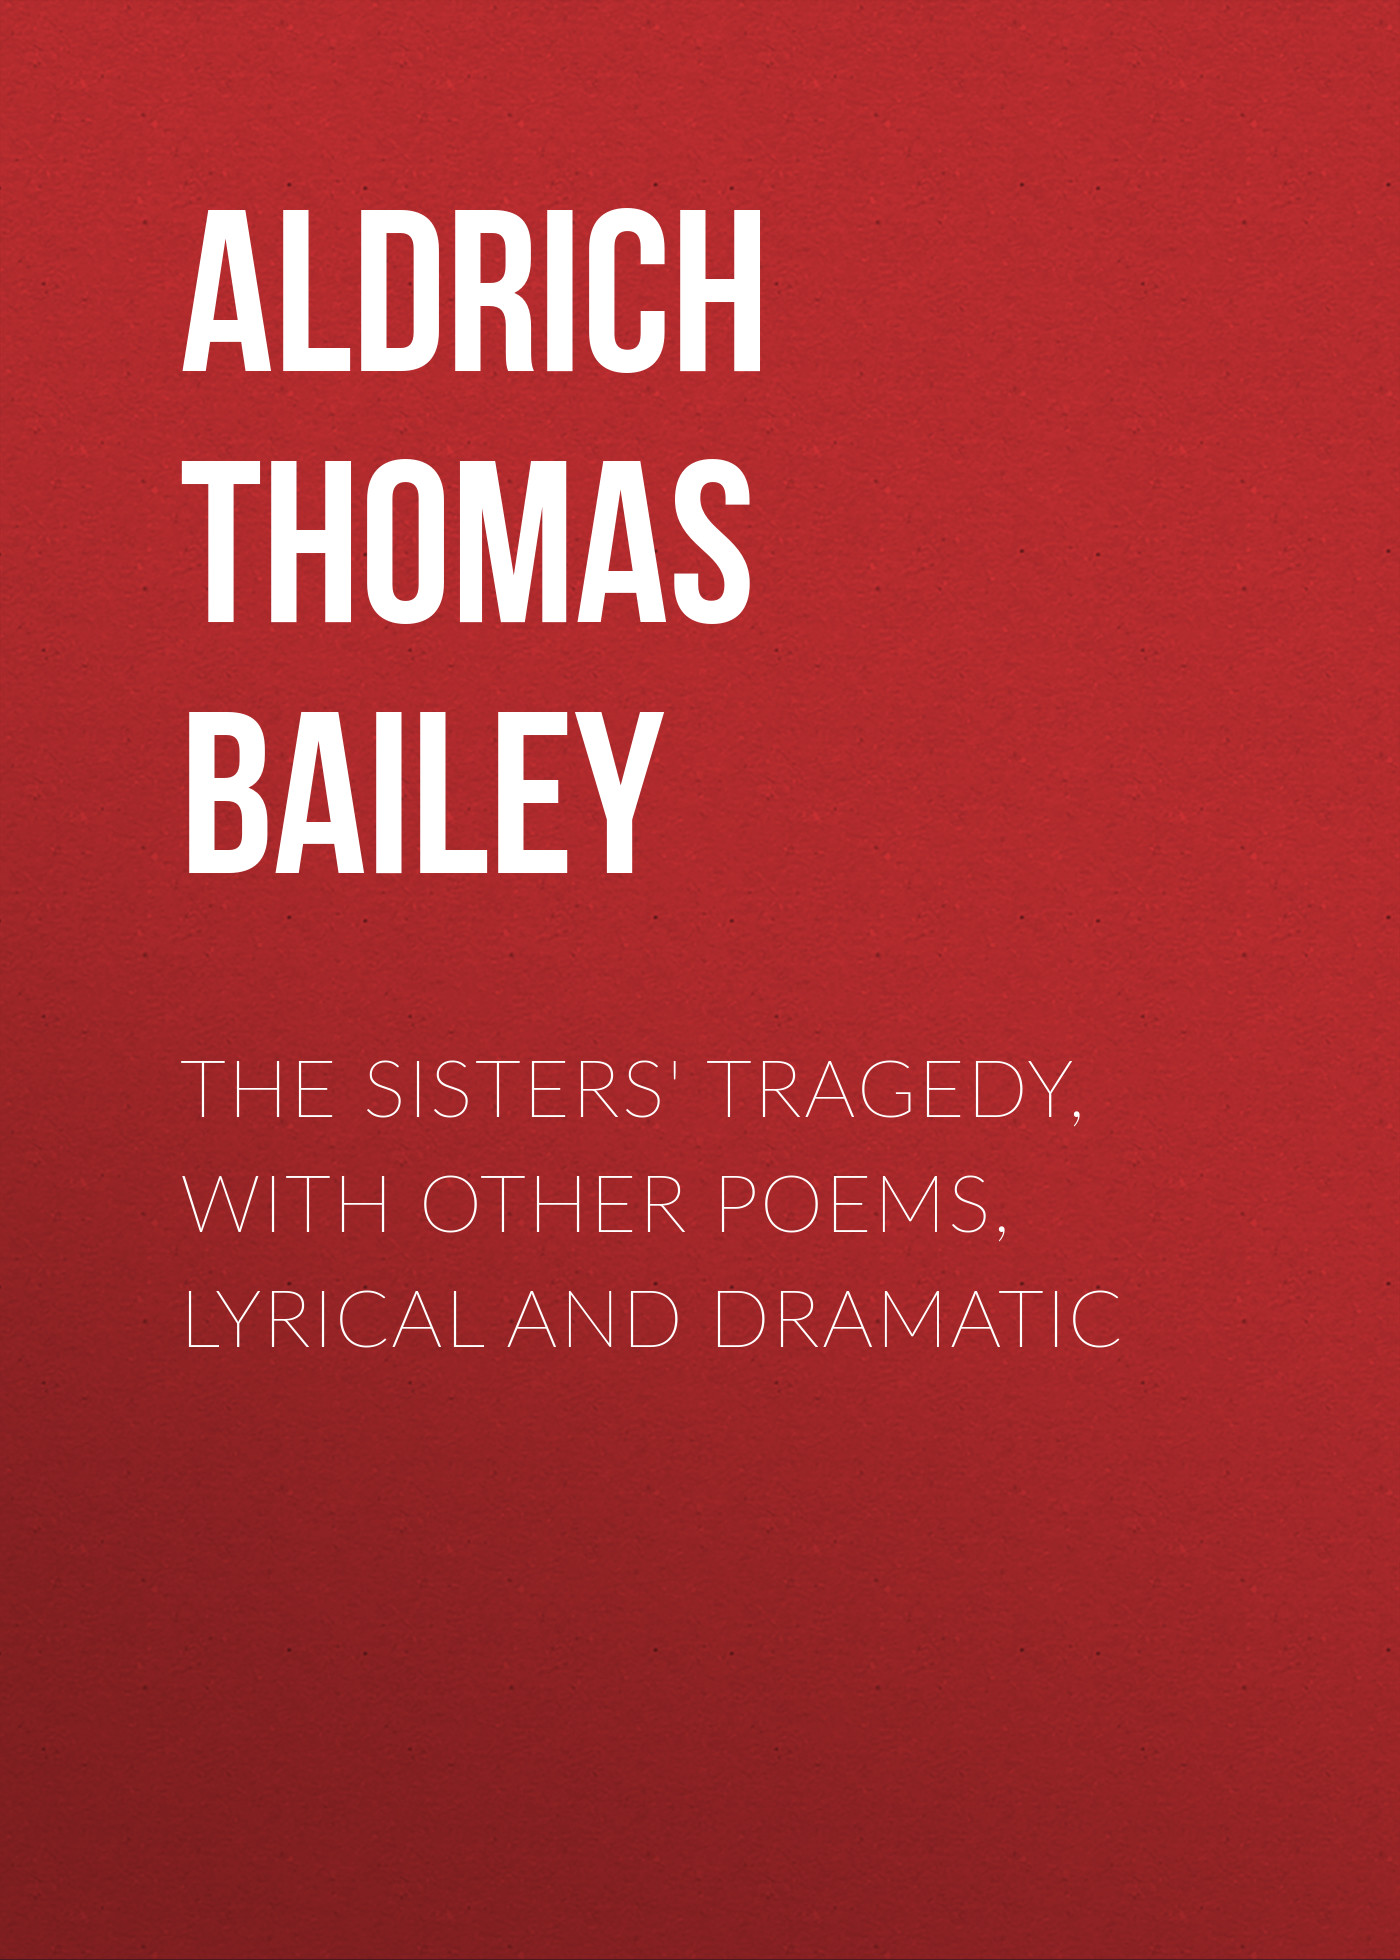 Aldrich Thomas Bailey The Sisters' Tragedy, with Other Poems, Lyrical and Dramatic oliver goldsmith the traveller the deserted village and other poems